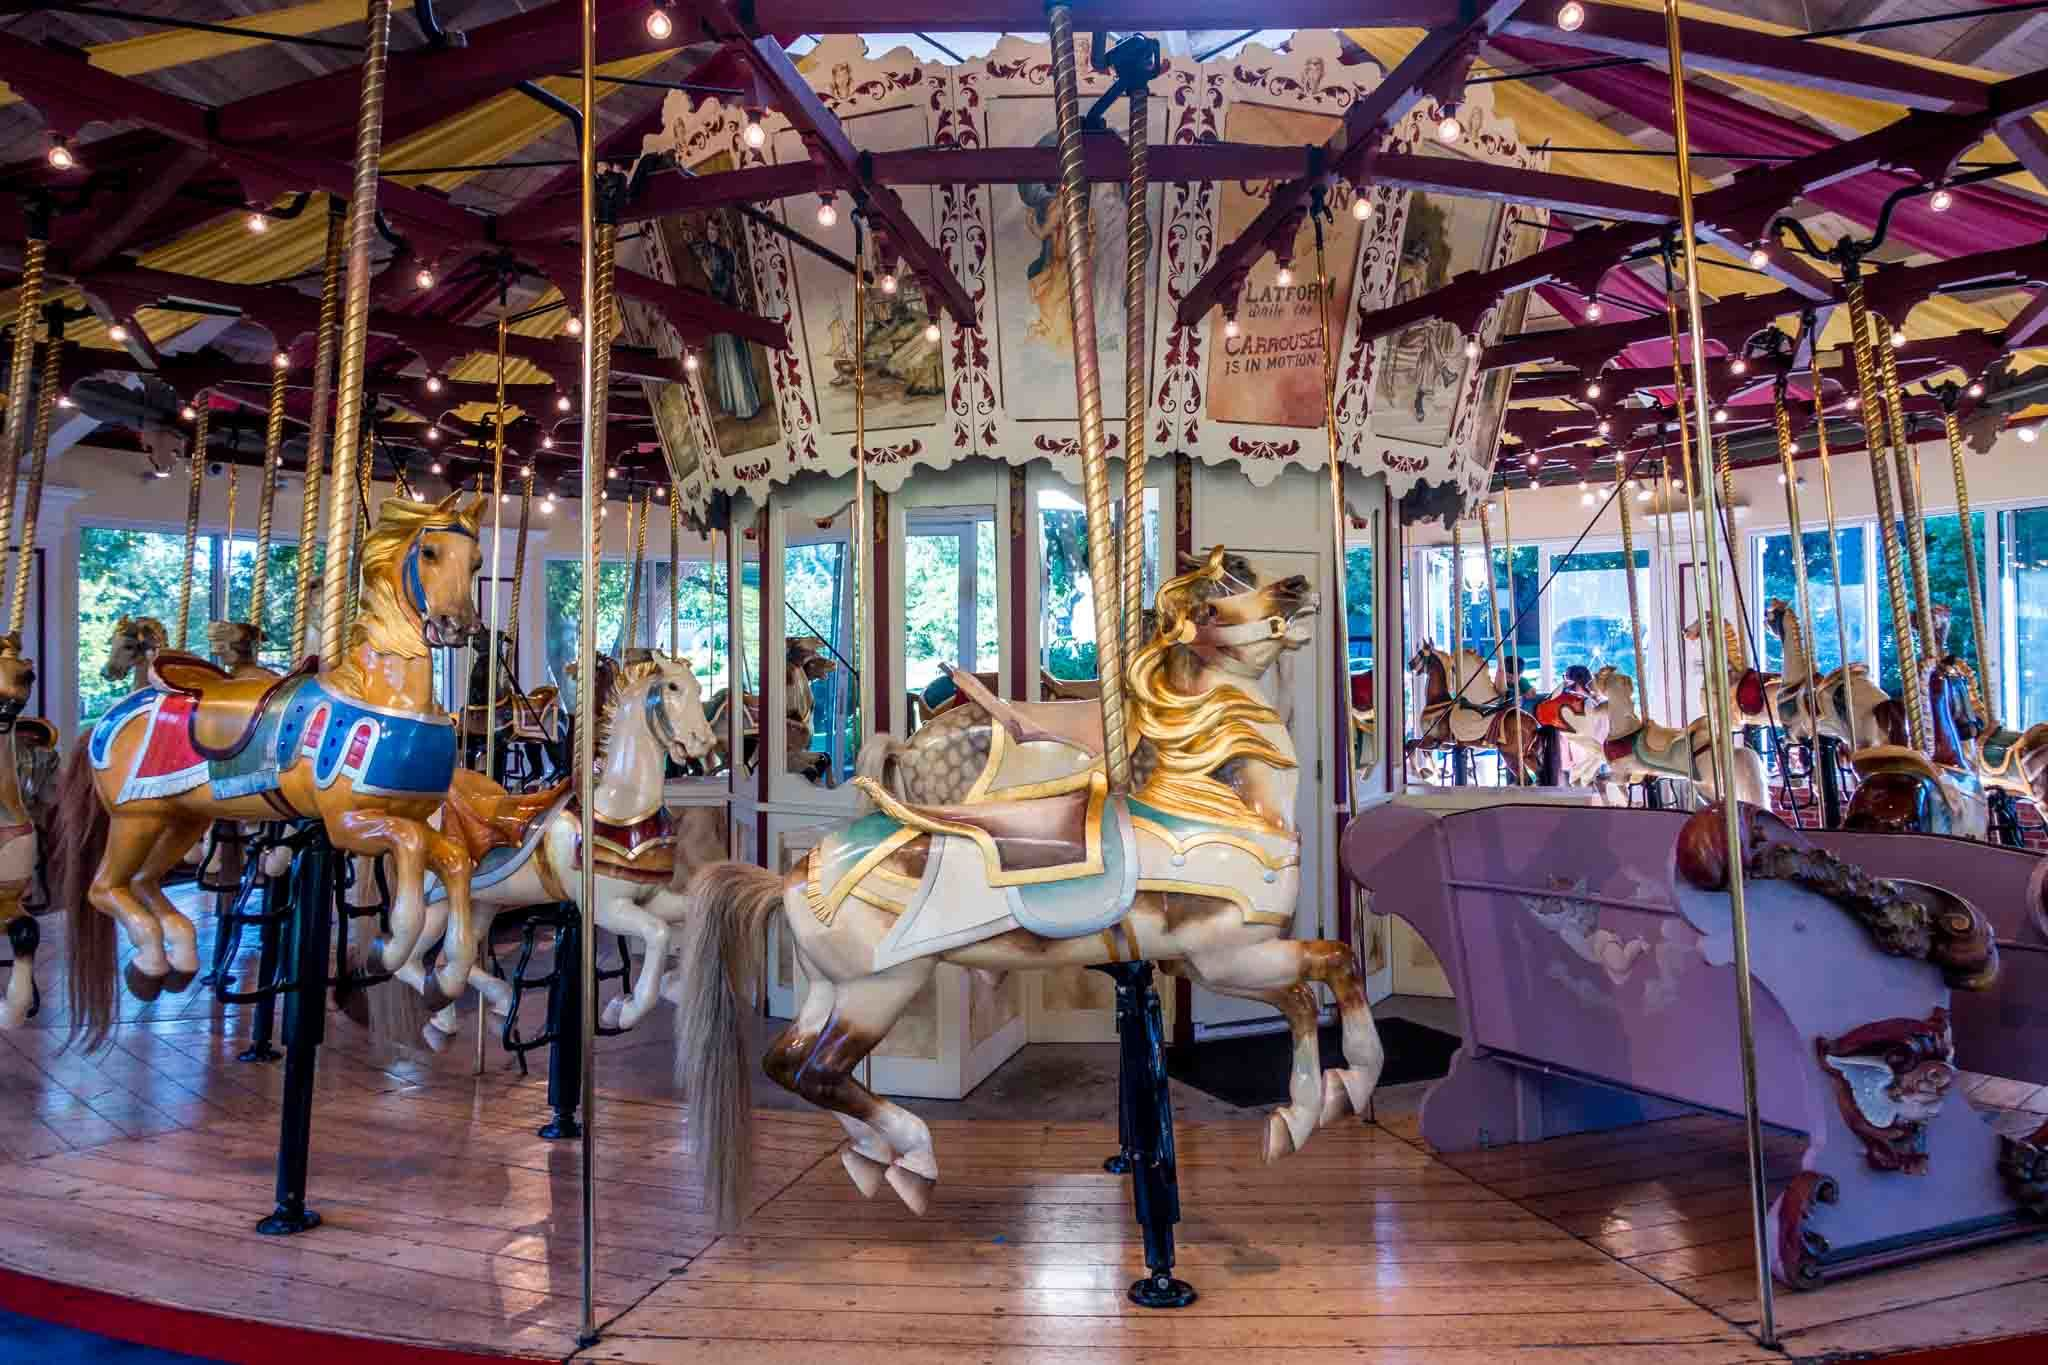 Colorful carousel at Congress Park in Saratoga Springs New York